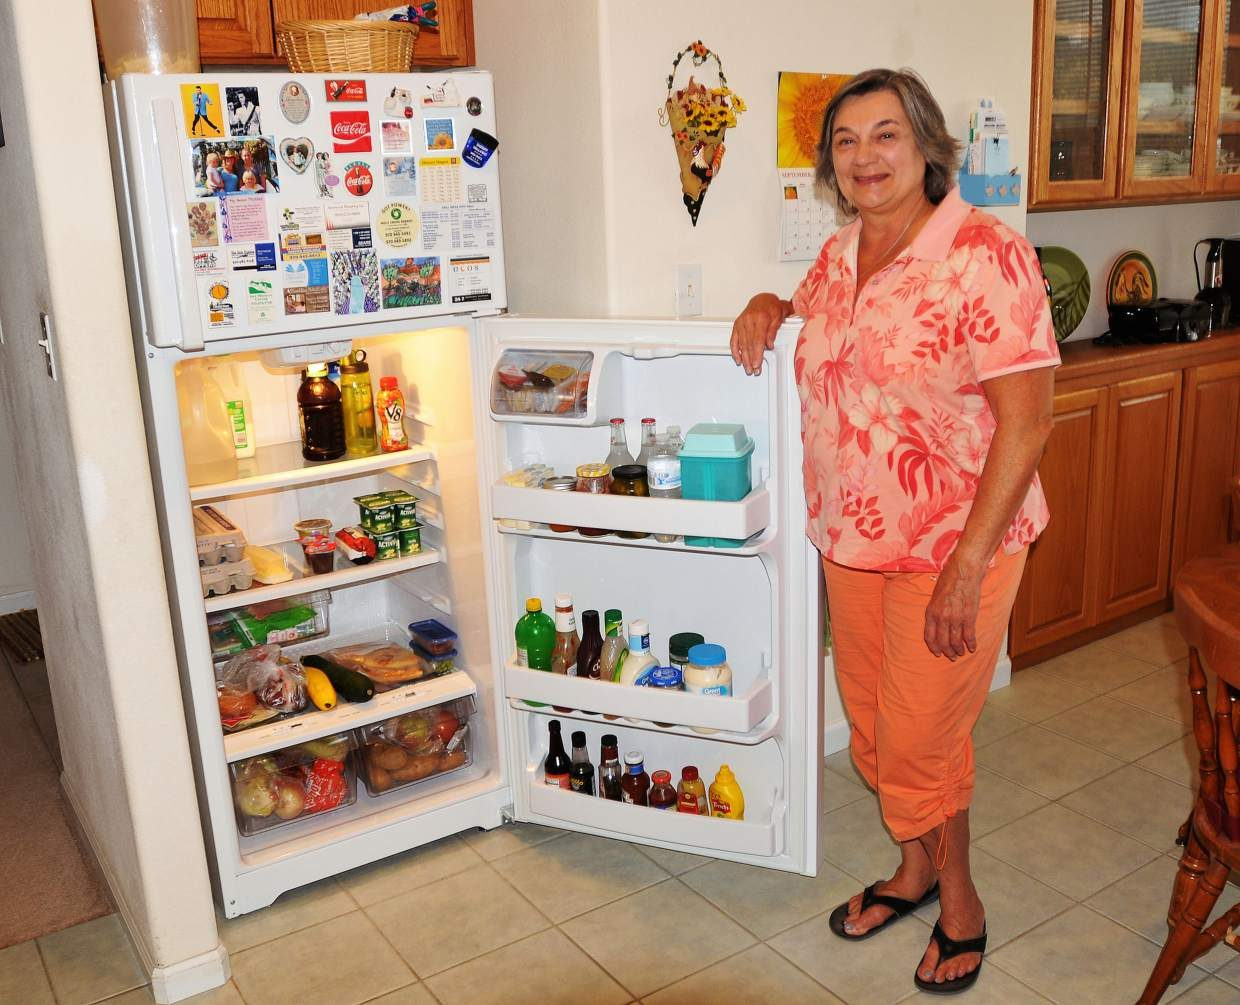 A new Energy Star refrigerator is saving electricity for Margaret McGhee of Battlement Mesa. McGhee received the new fridge through the CARE program.